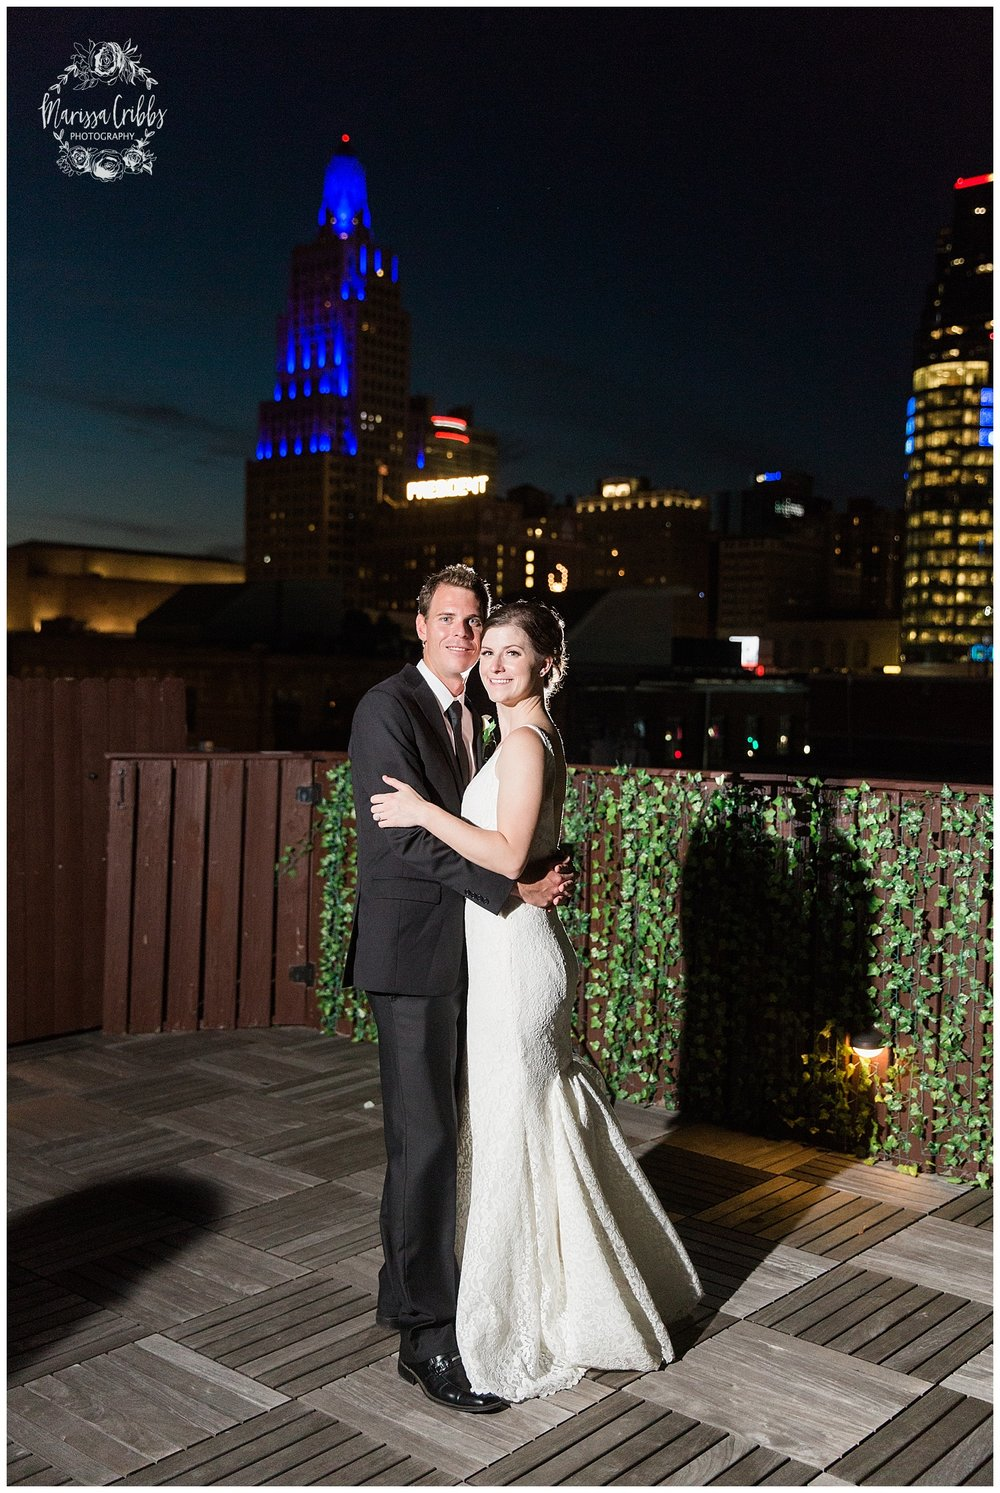 TERRACE ON GRAND WEDDING | MEGHAN & DAVYD | MARISSA CRIBBS PHOTOGRAPHY | CELEEBRATIONS OF LOVE_3007.jpg